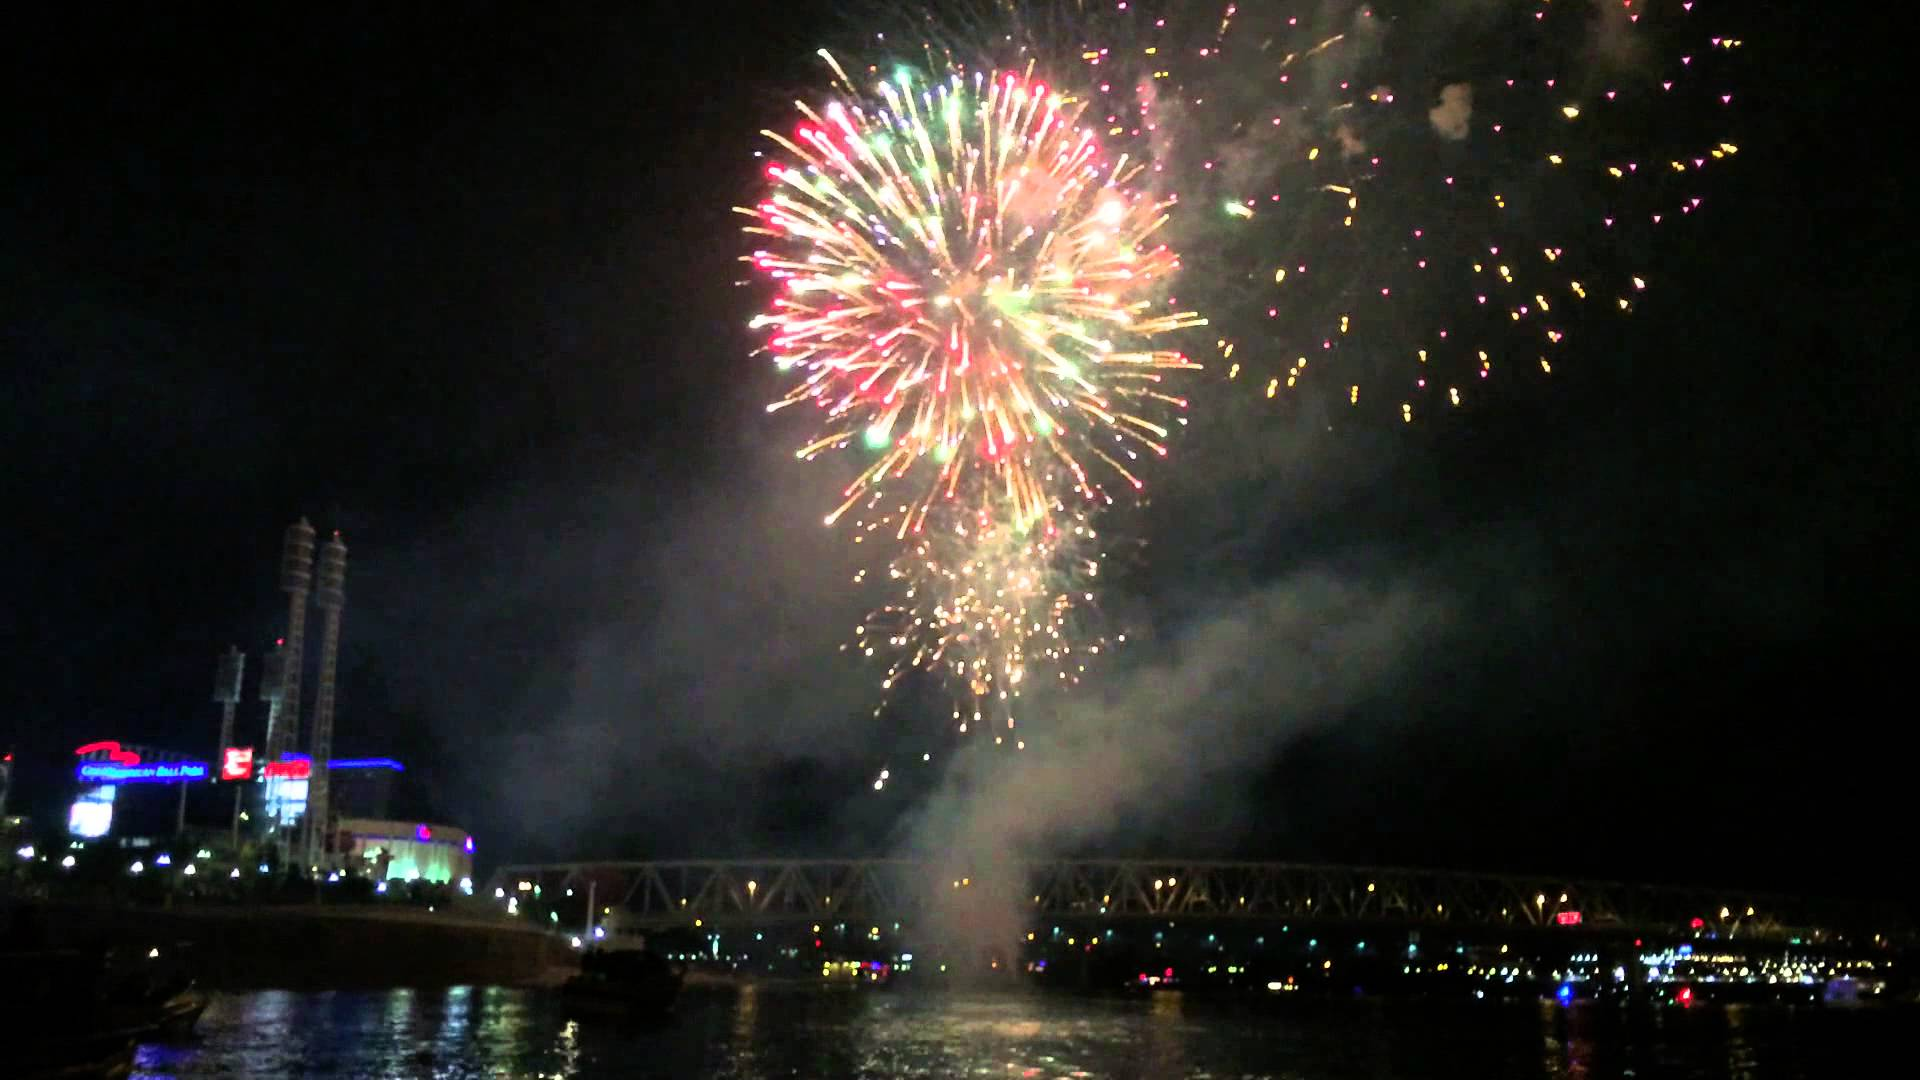 Where to watch July 4th fireworks in Cincinnati 2017